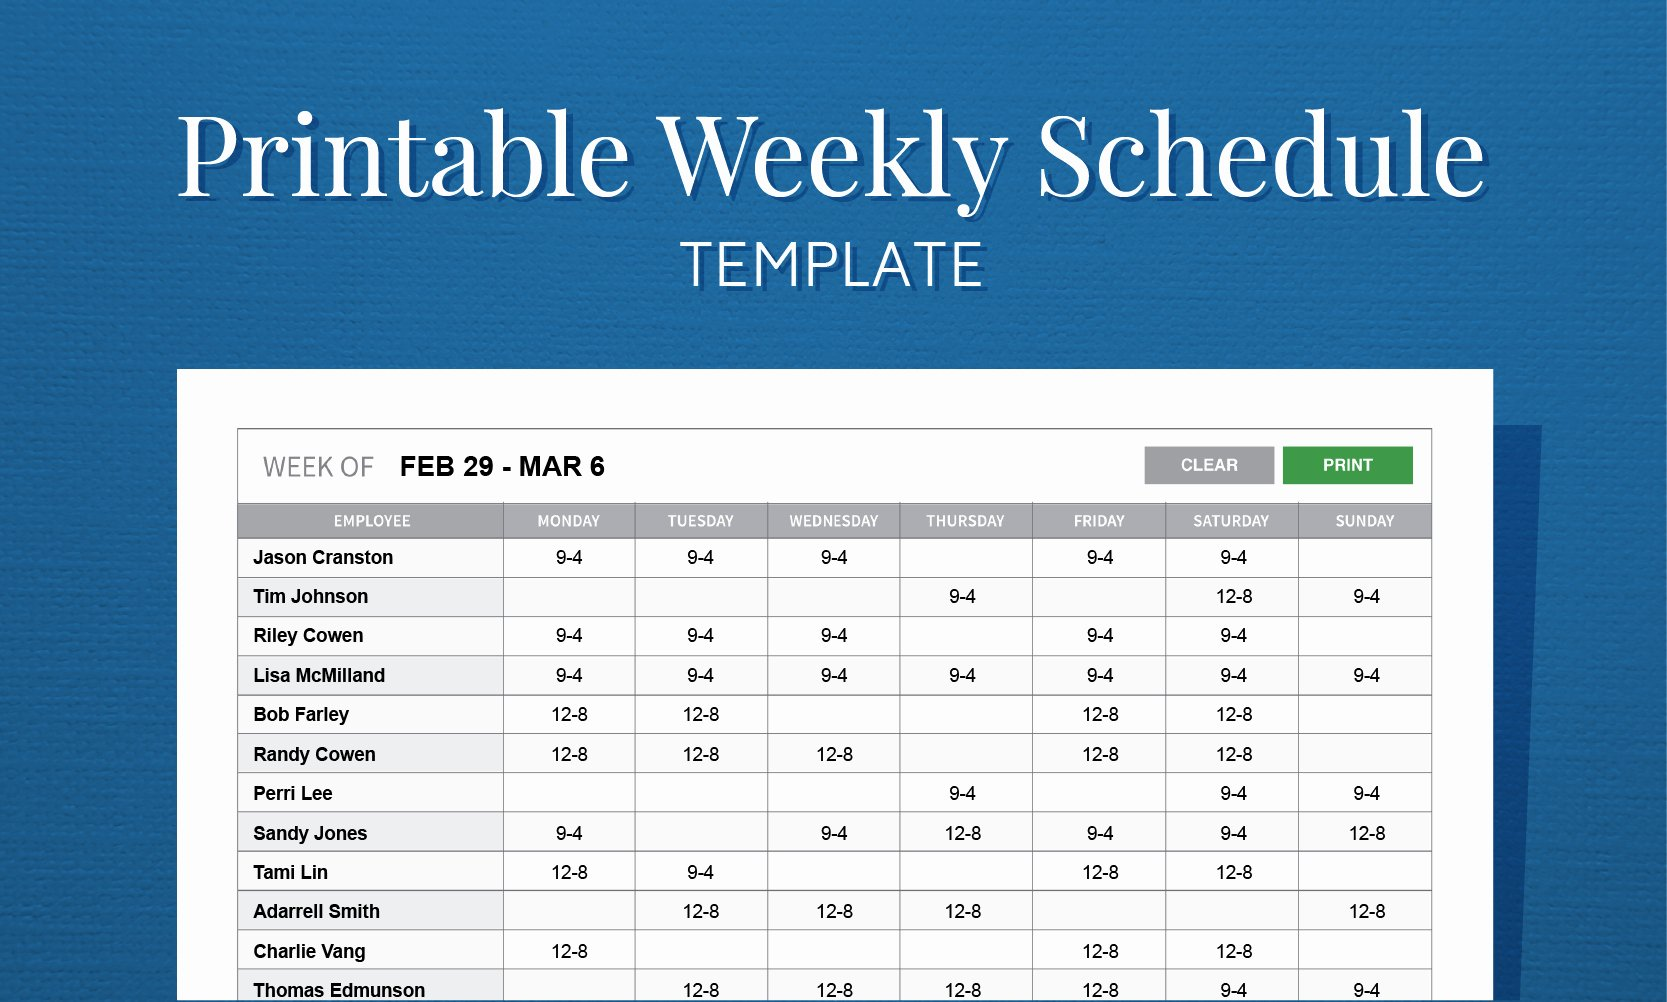 Work Week Schedule Template Luxury Job Scheduling Spreadsheet Spreadsheet Downloa Job Shop